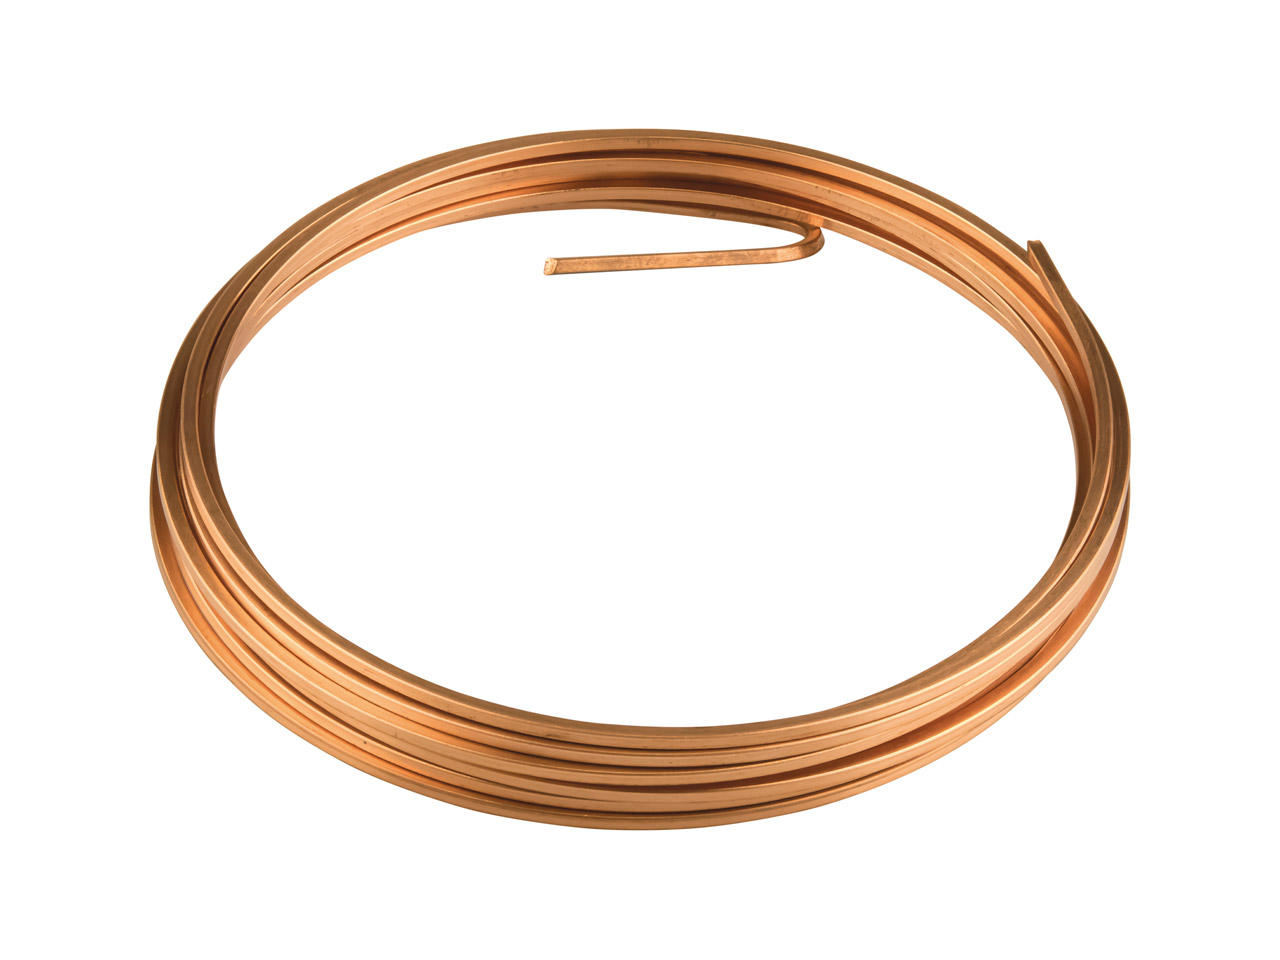 Copper Square Wire 2mm X 3m Fully Annealed - cooksongold.com